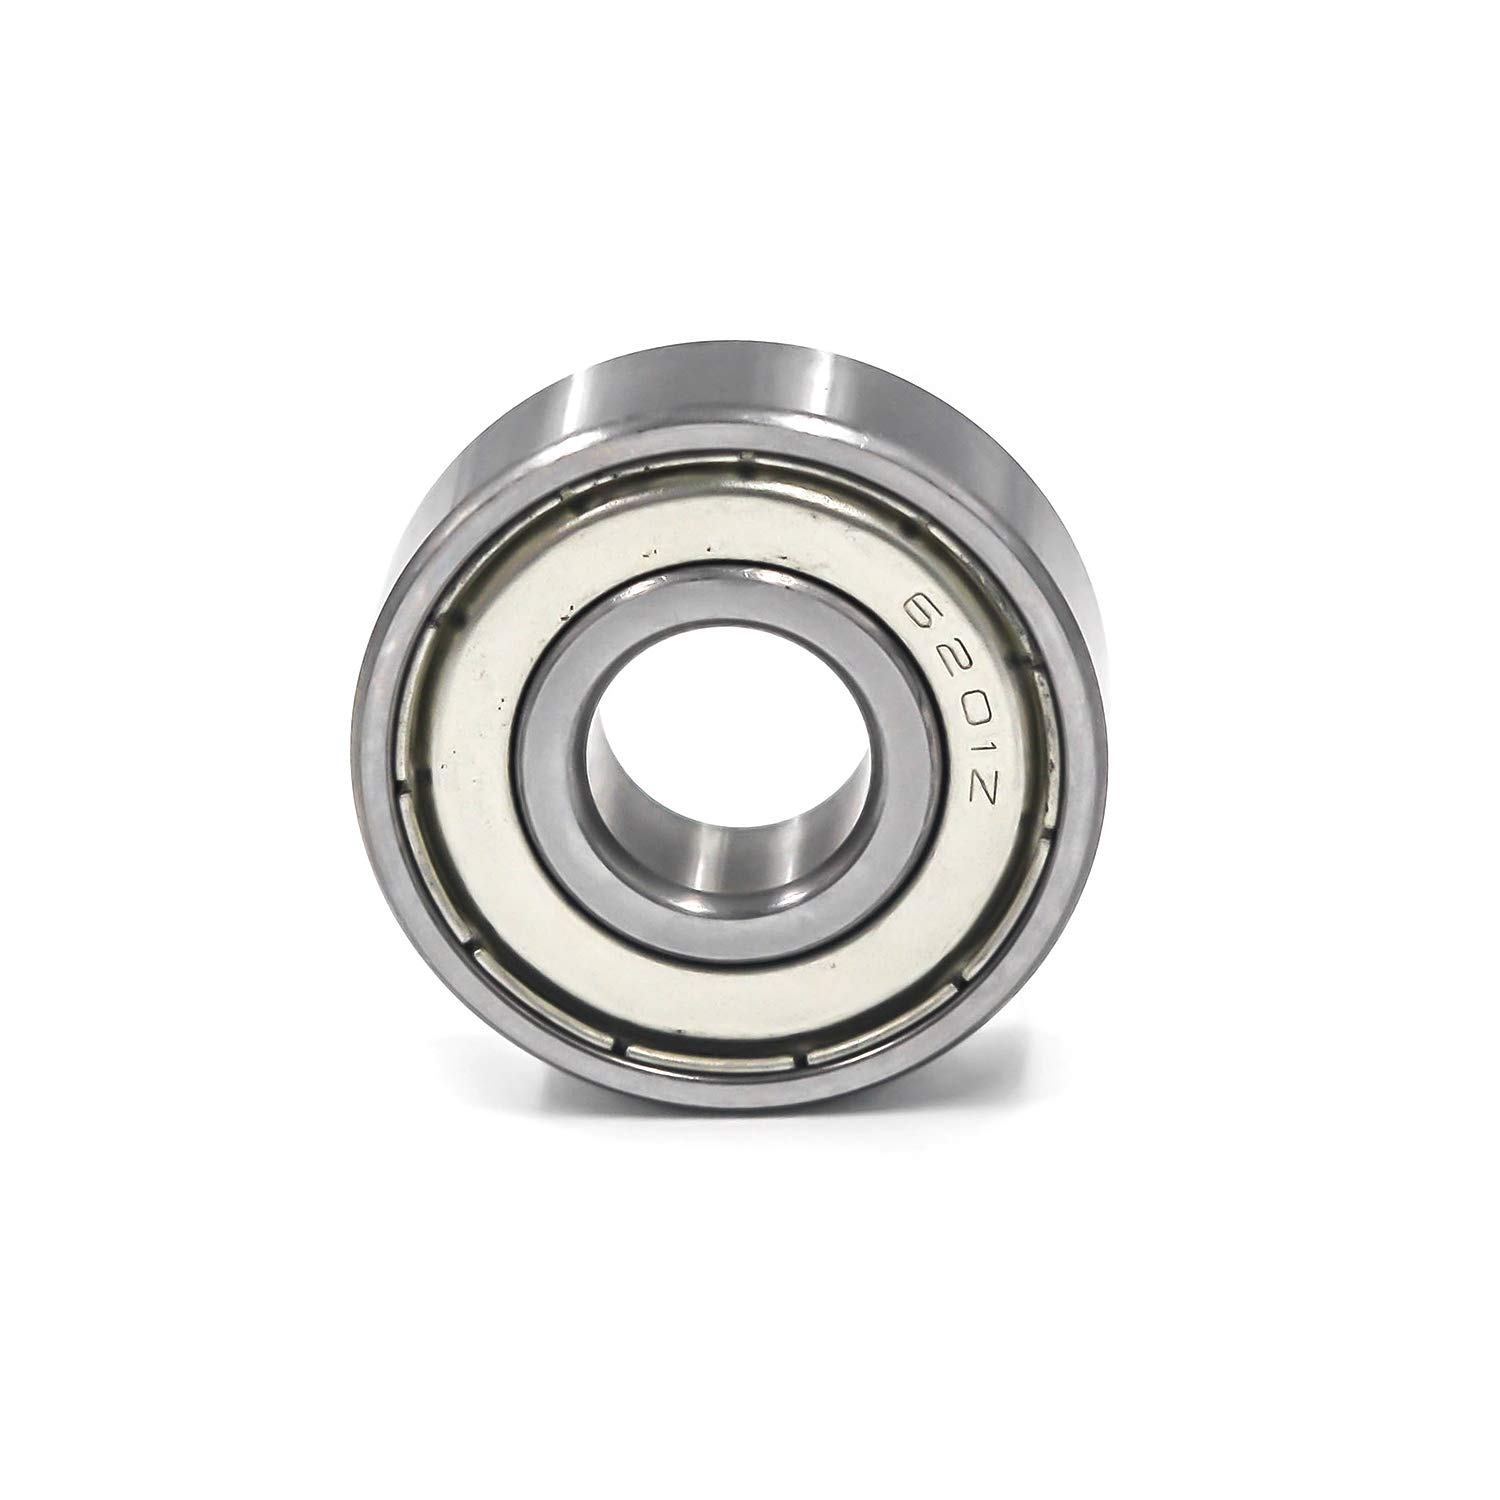 Antrader 2-Pack 12mm x 32mm x 10mm 6201Z Double Shielded Deep Groove Radial Ball Bearings